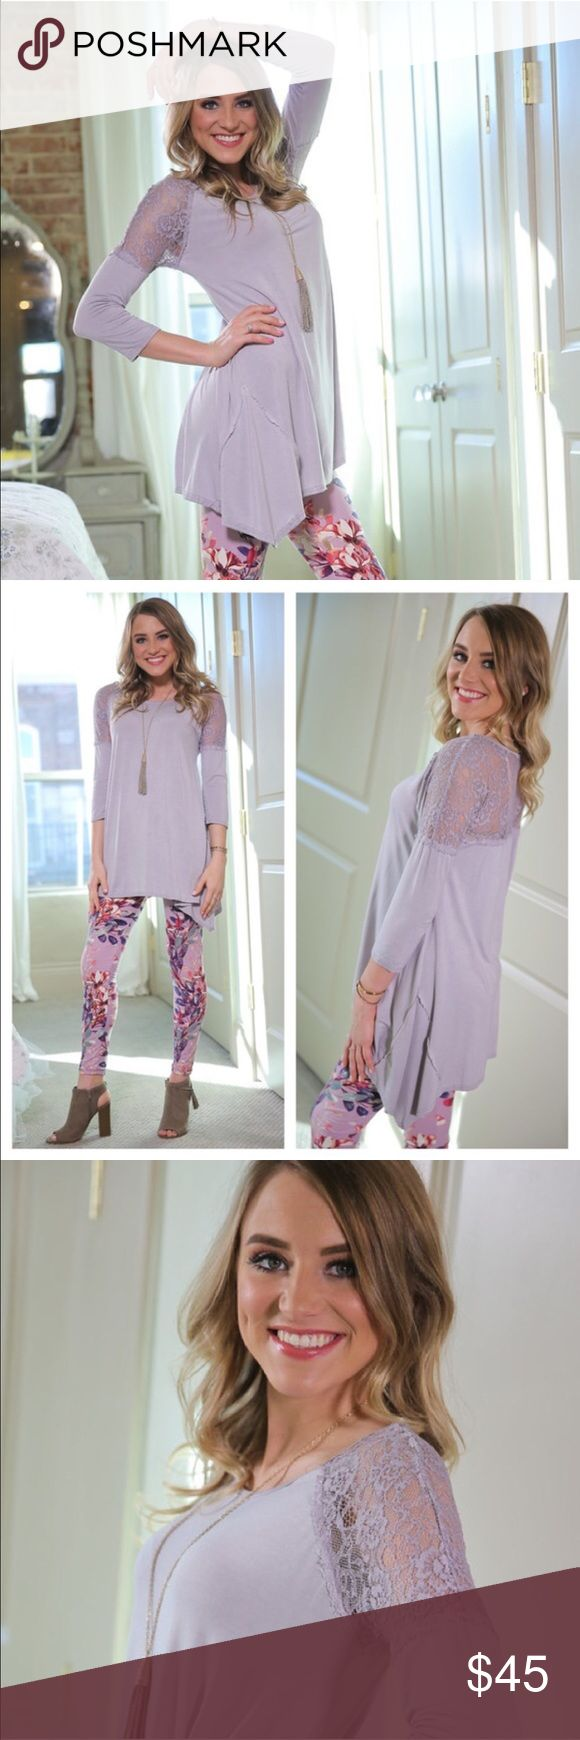 🆕 Lilac and Lace Tunic Super cute lilac and Lace Tunic! Pairs perfectly with the leggings in this post that I also have for sale! 94% Rayon, 6% Spandex. 20% off bundles!! Infinity Raine Tops Tunics